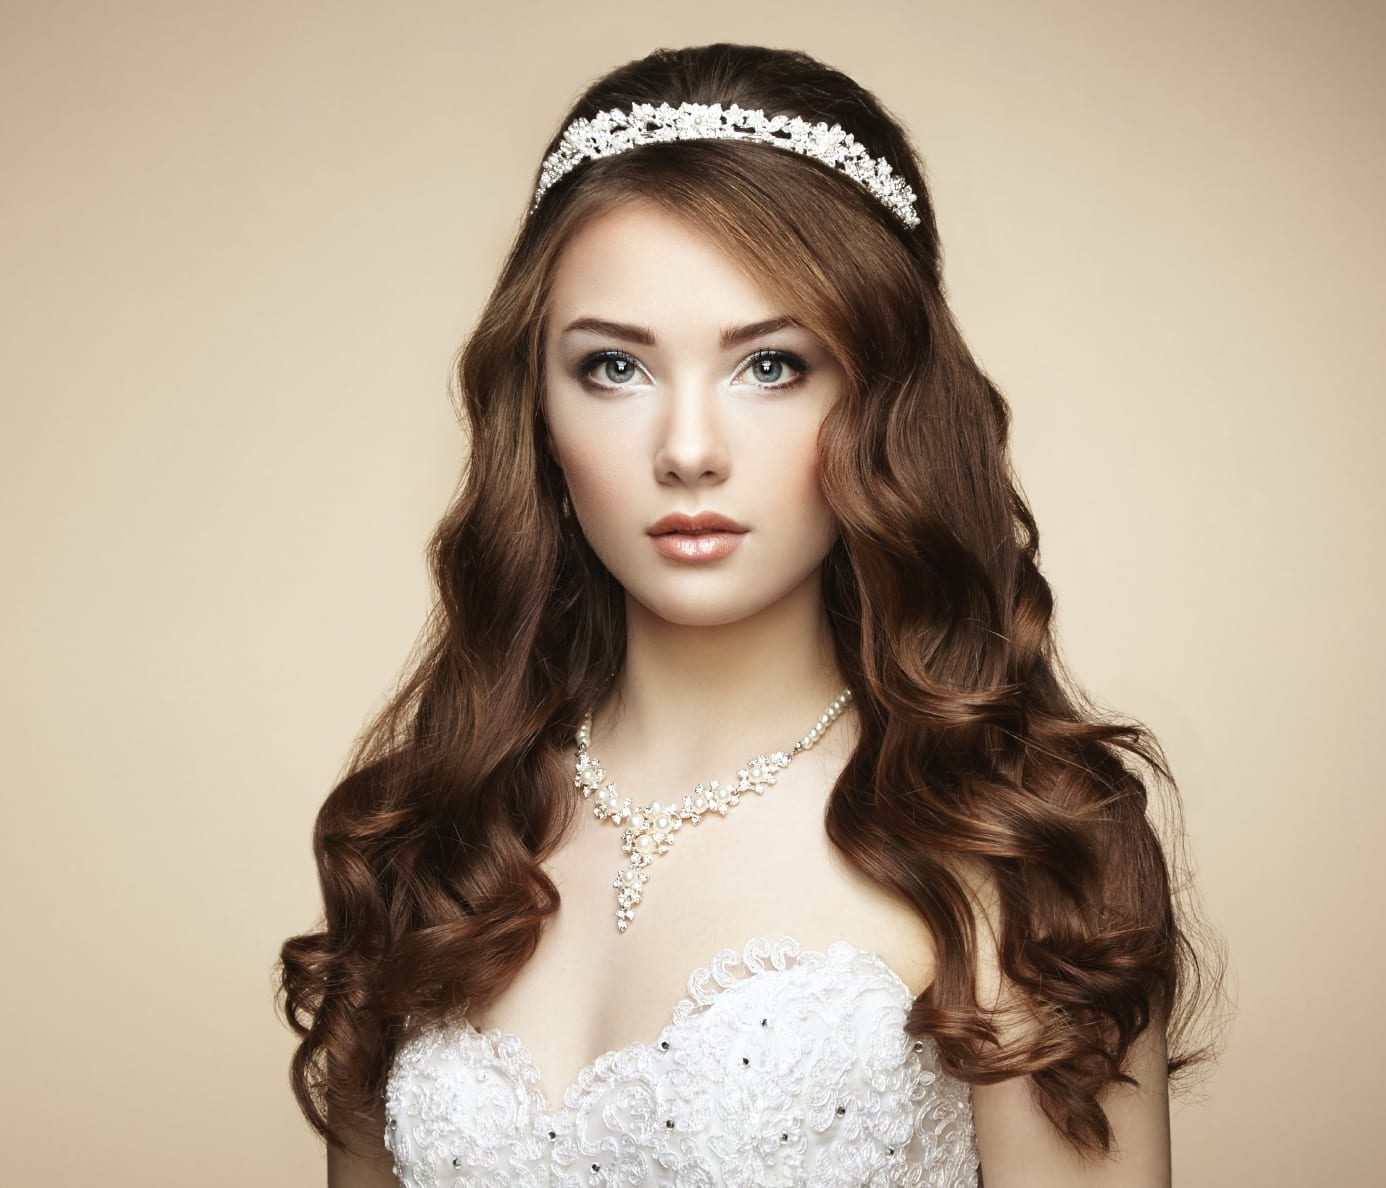 portrait of beautiful bride with hair and makeup done